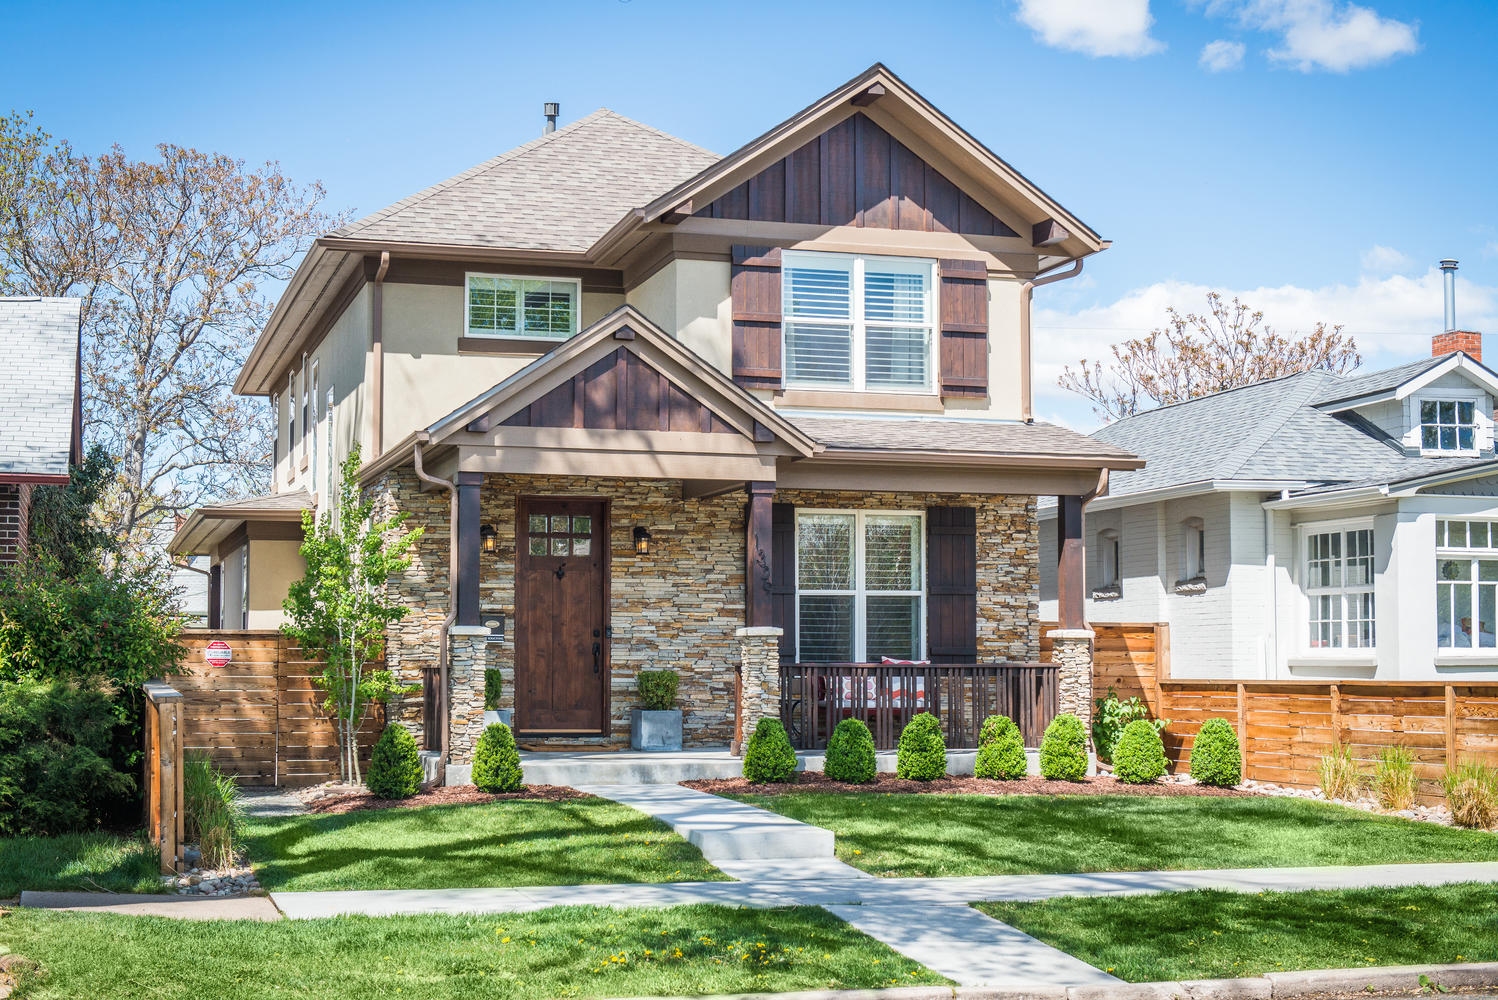 Single Family Home for Active at Stunning Newer Build Contemporary Home 1329 South Sherman Street Denver, Colorado 80210 United States